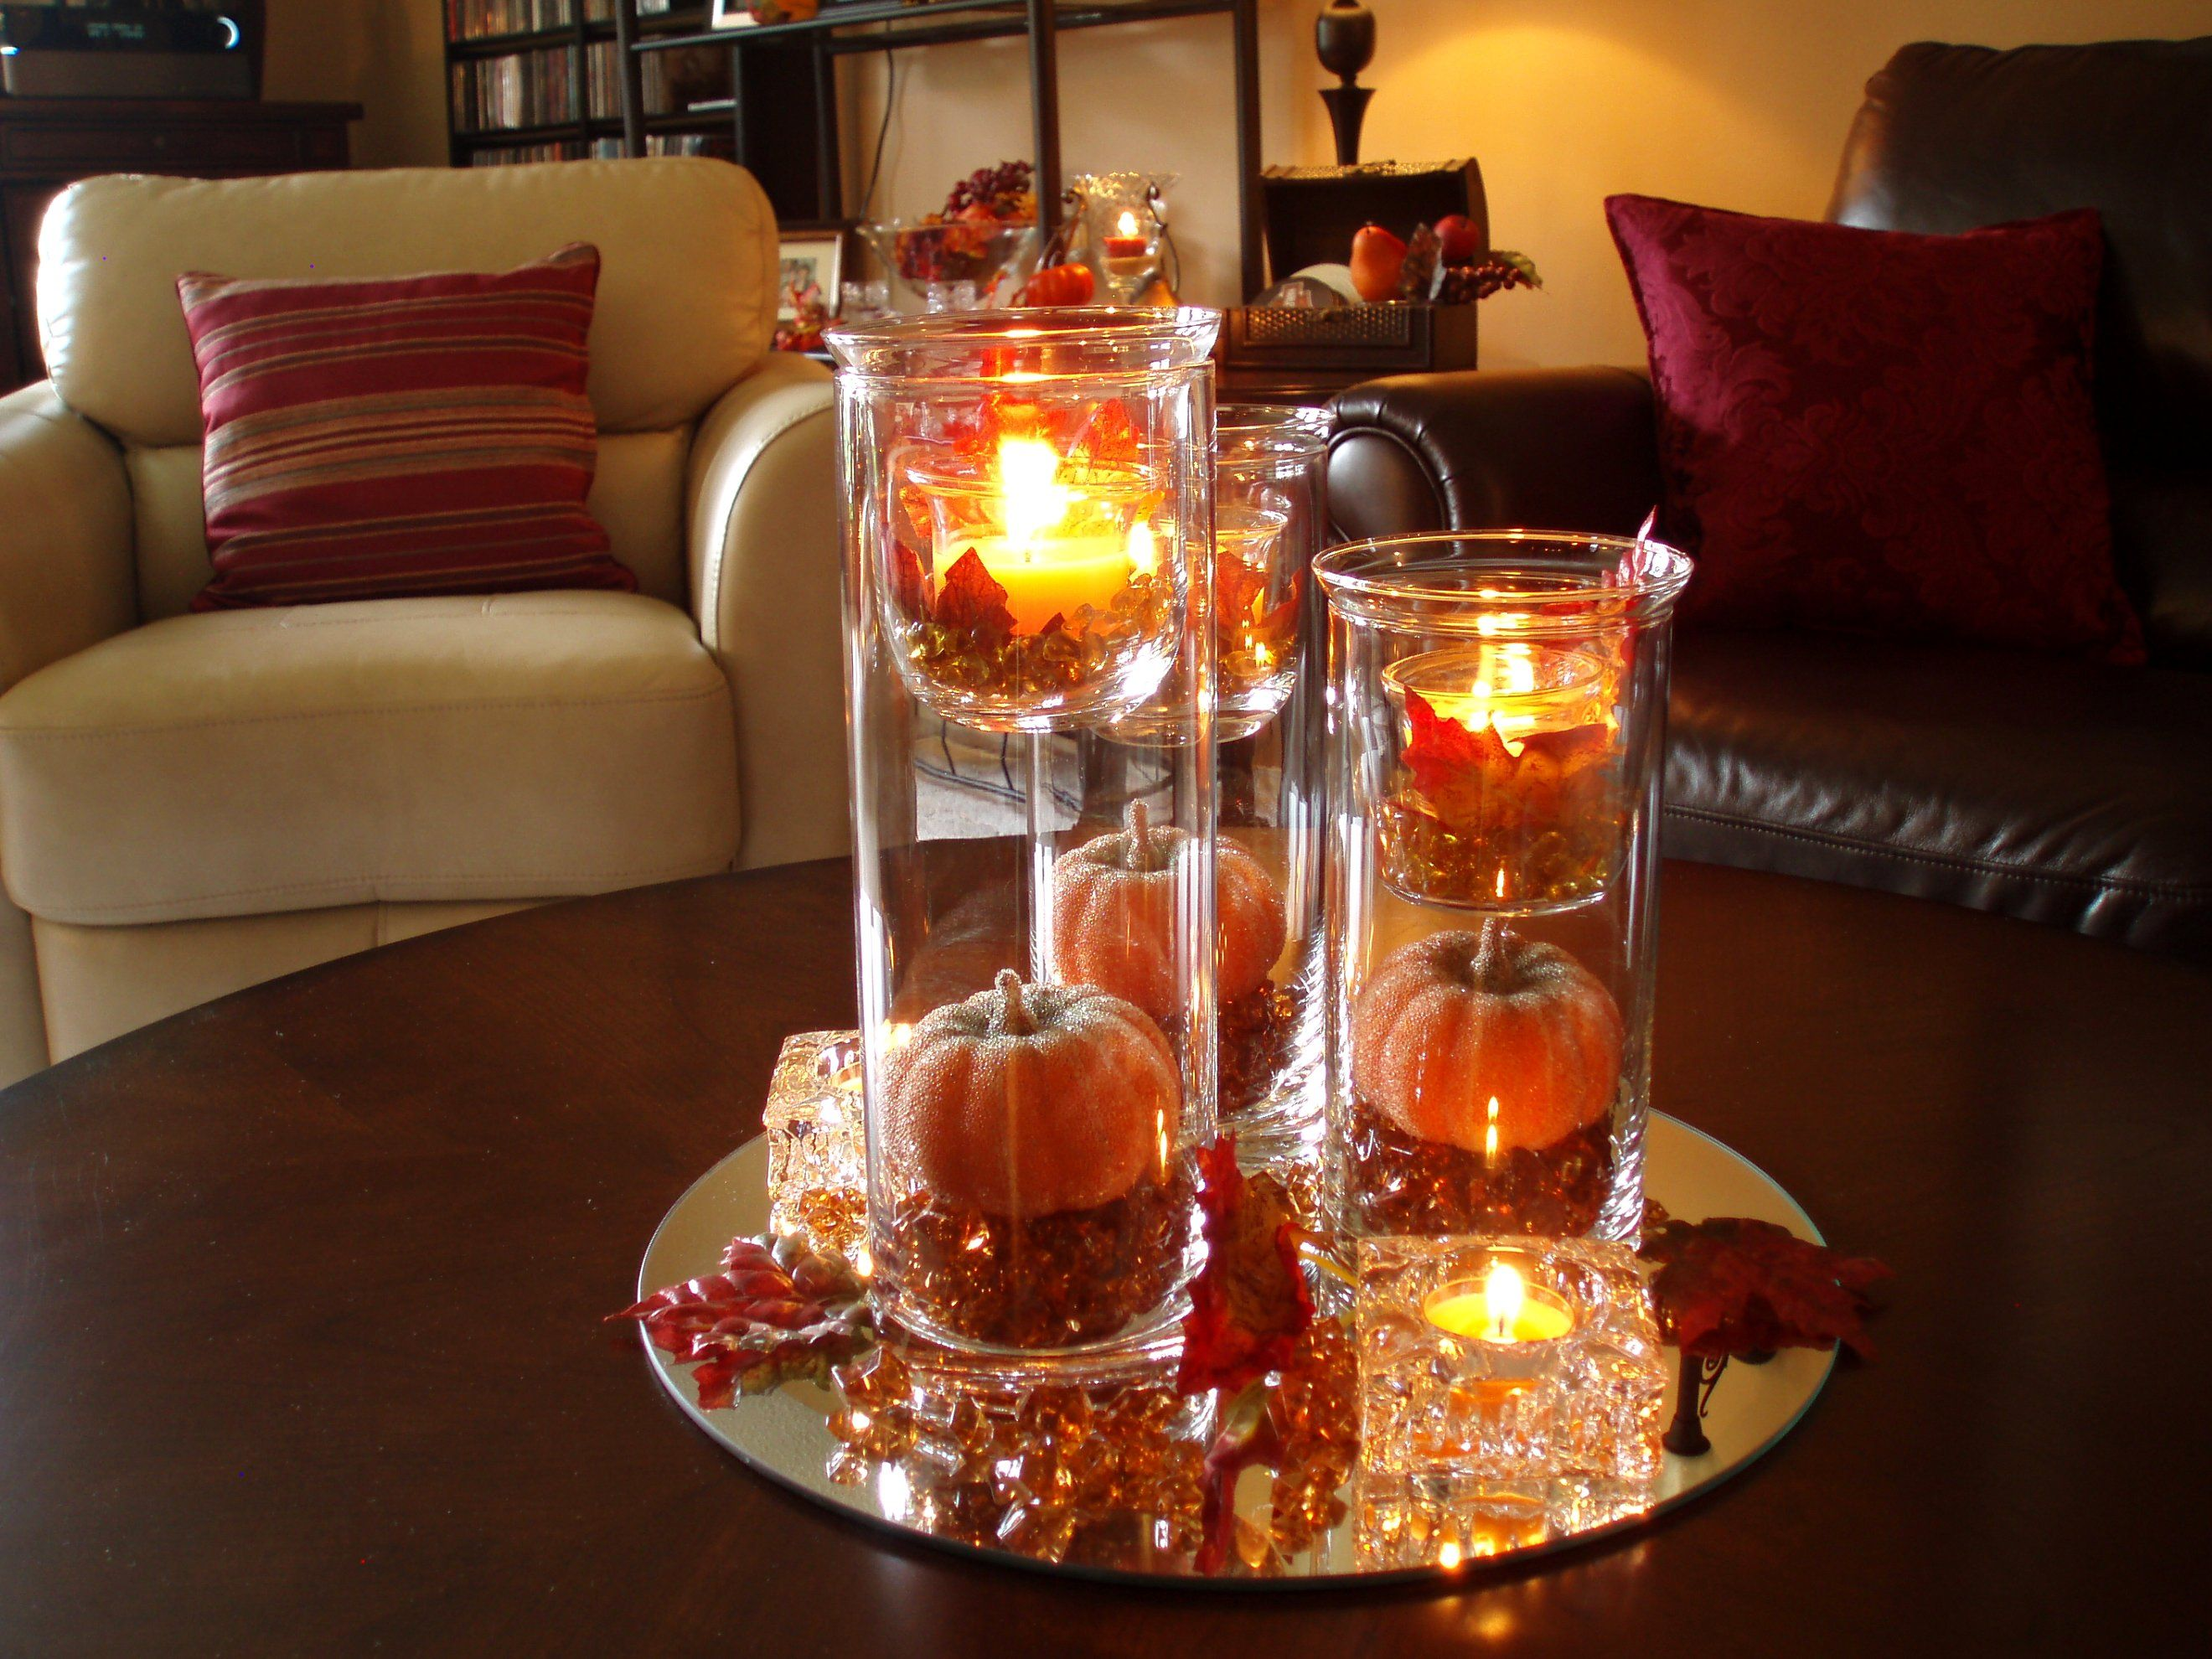 decoration ideas, awesome light candle in clear glass decor on